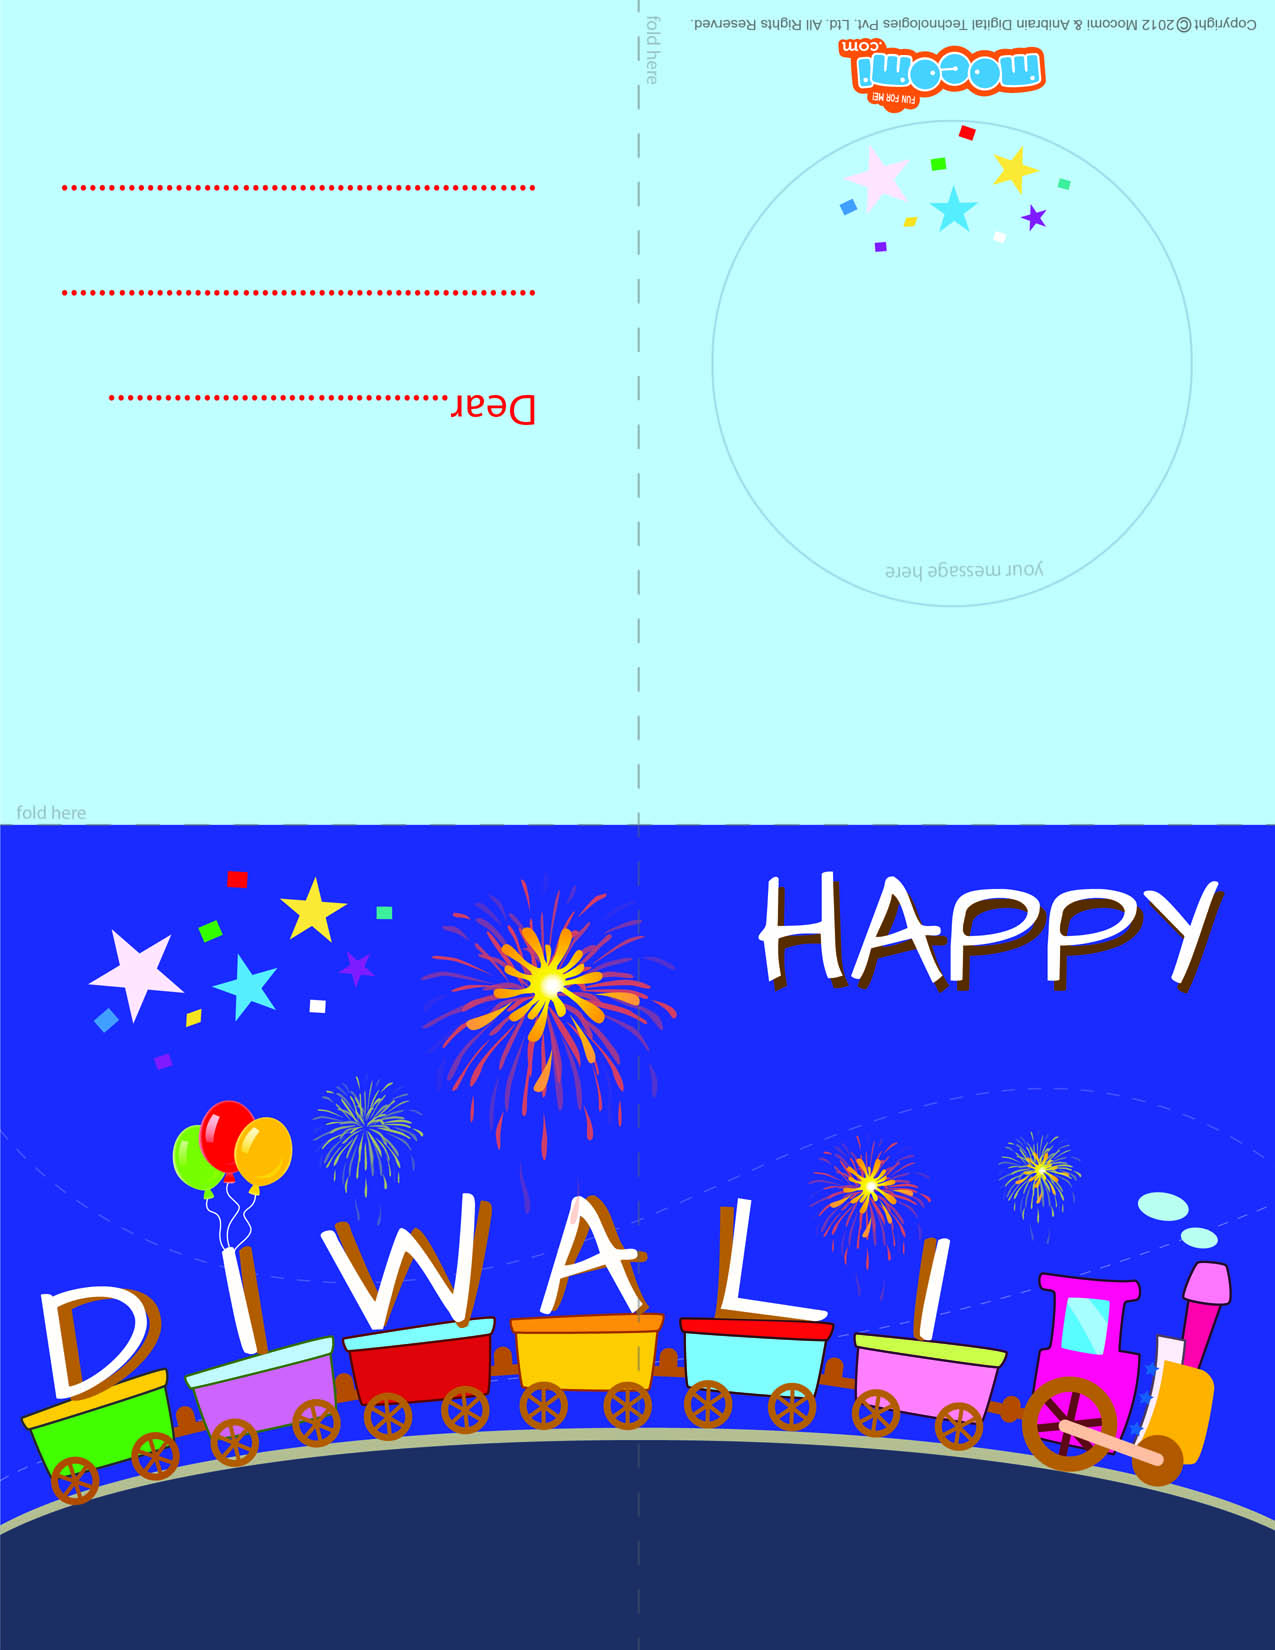 Diwali Greetings – Toy Train (Printable Card for Kids)